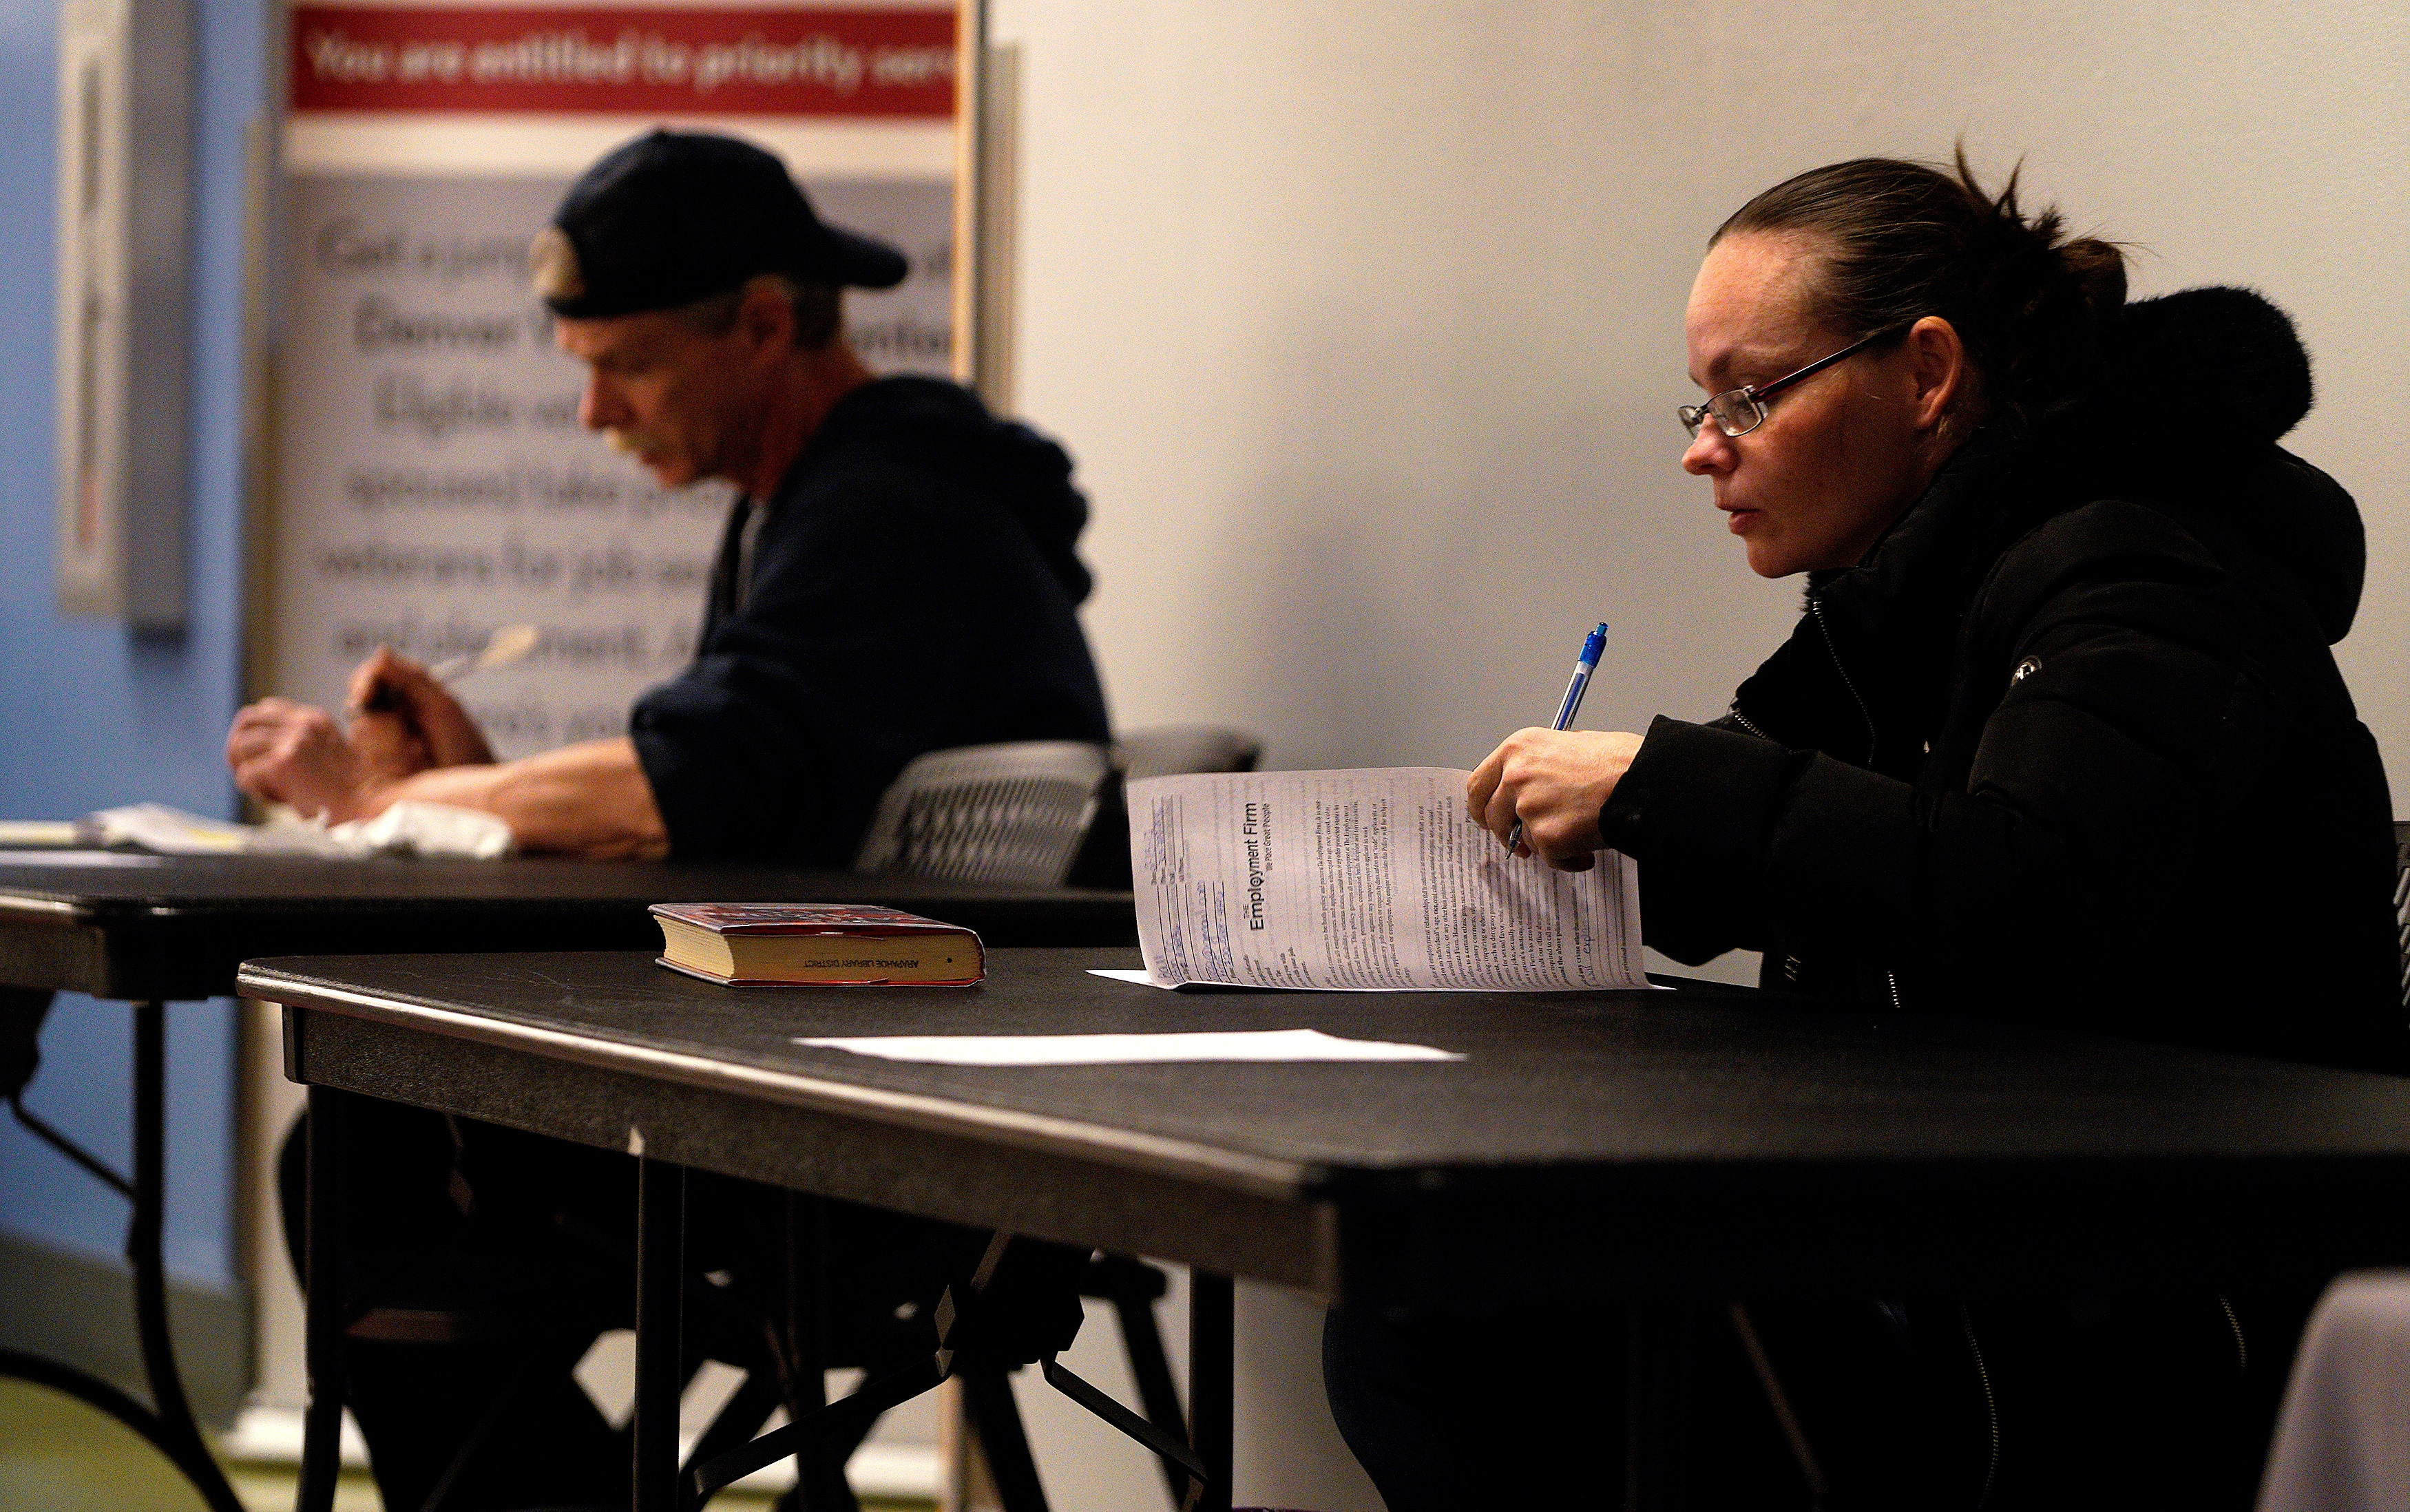 Job seekers fill out applications at a job fair at the Denver Workforce Center in Denver